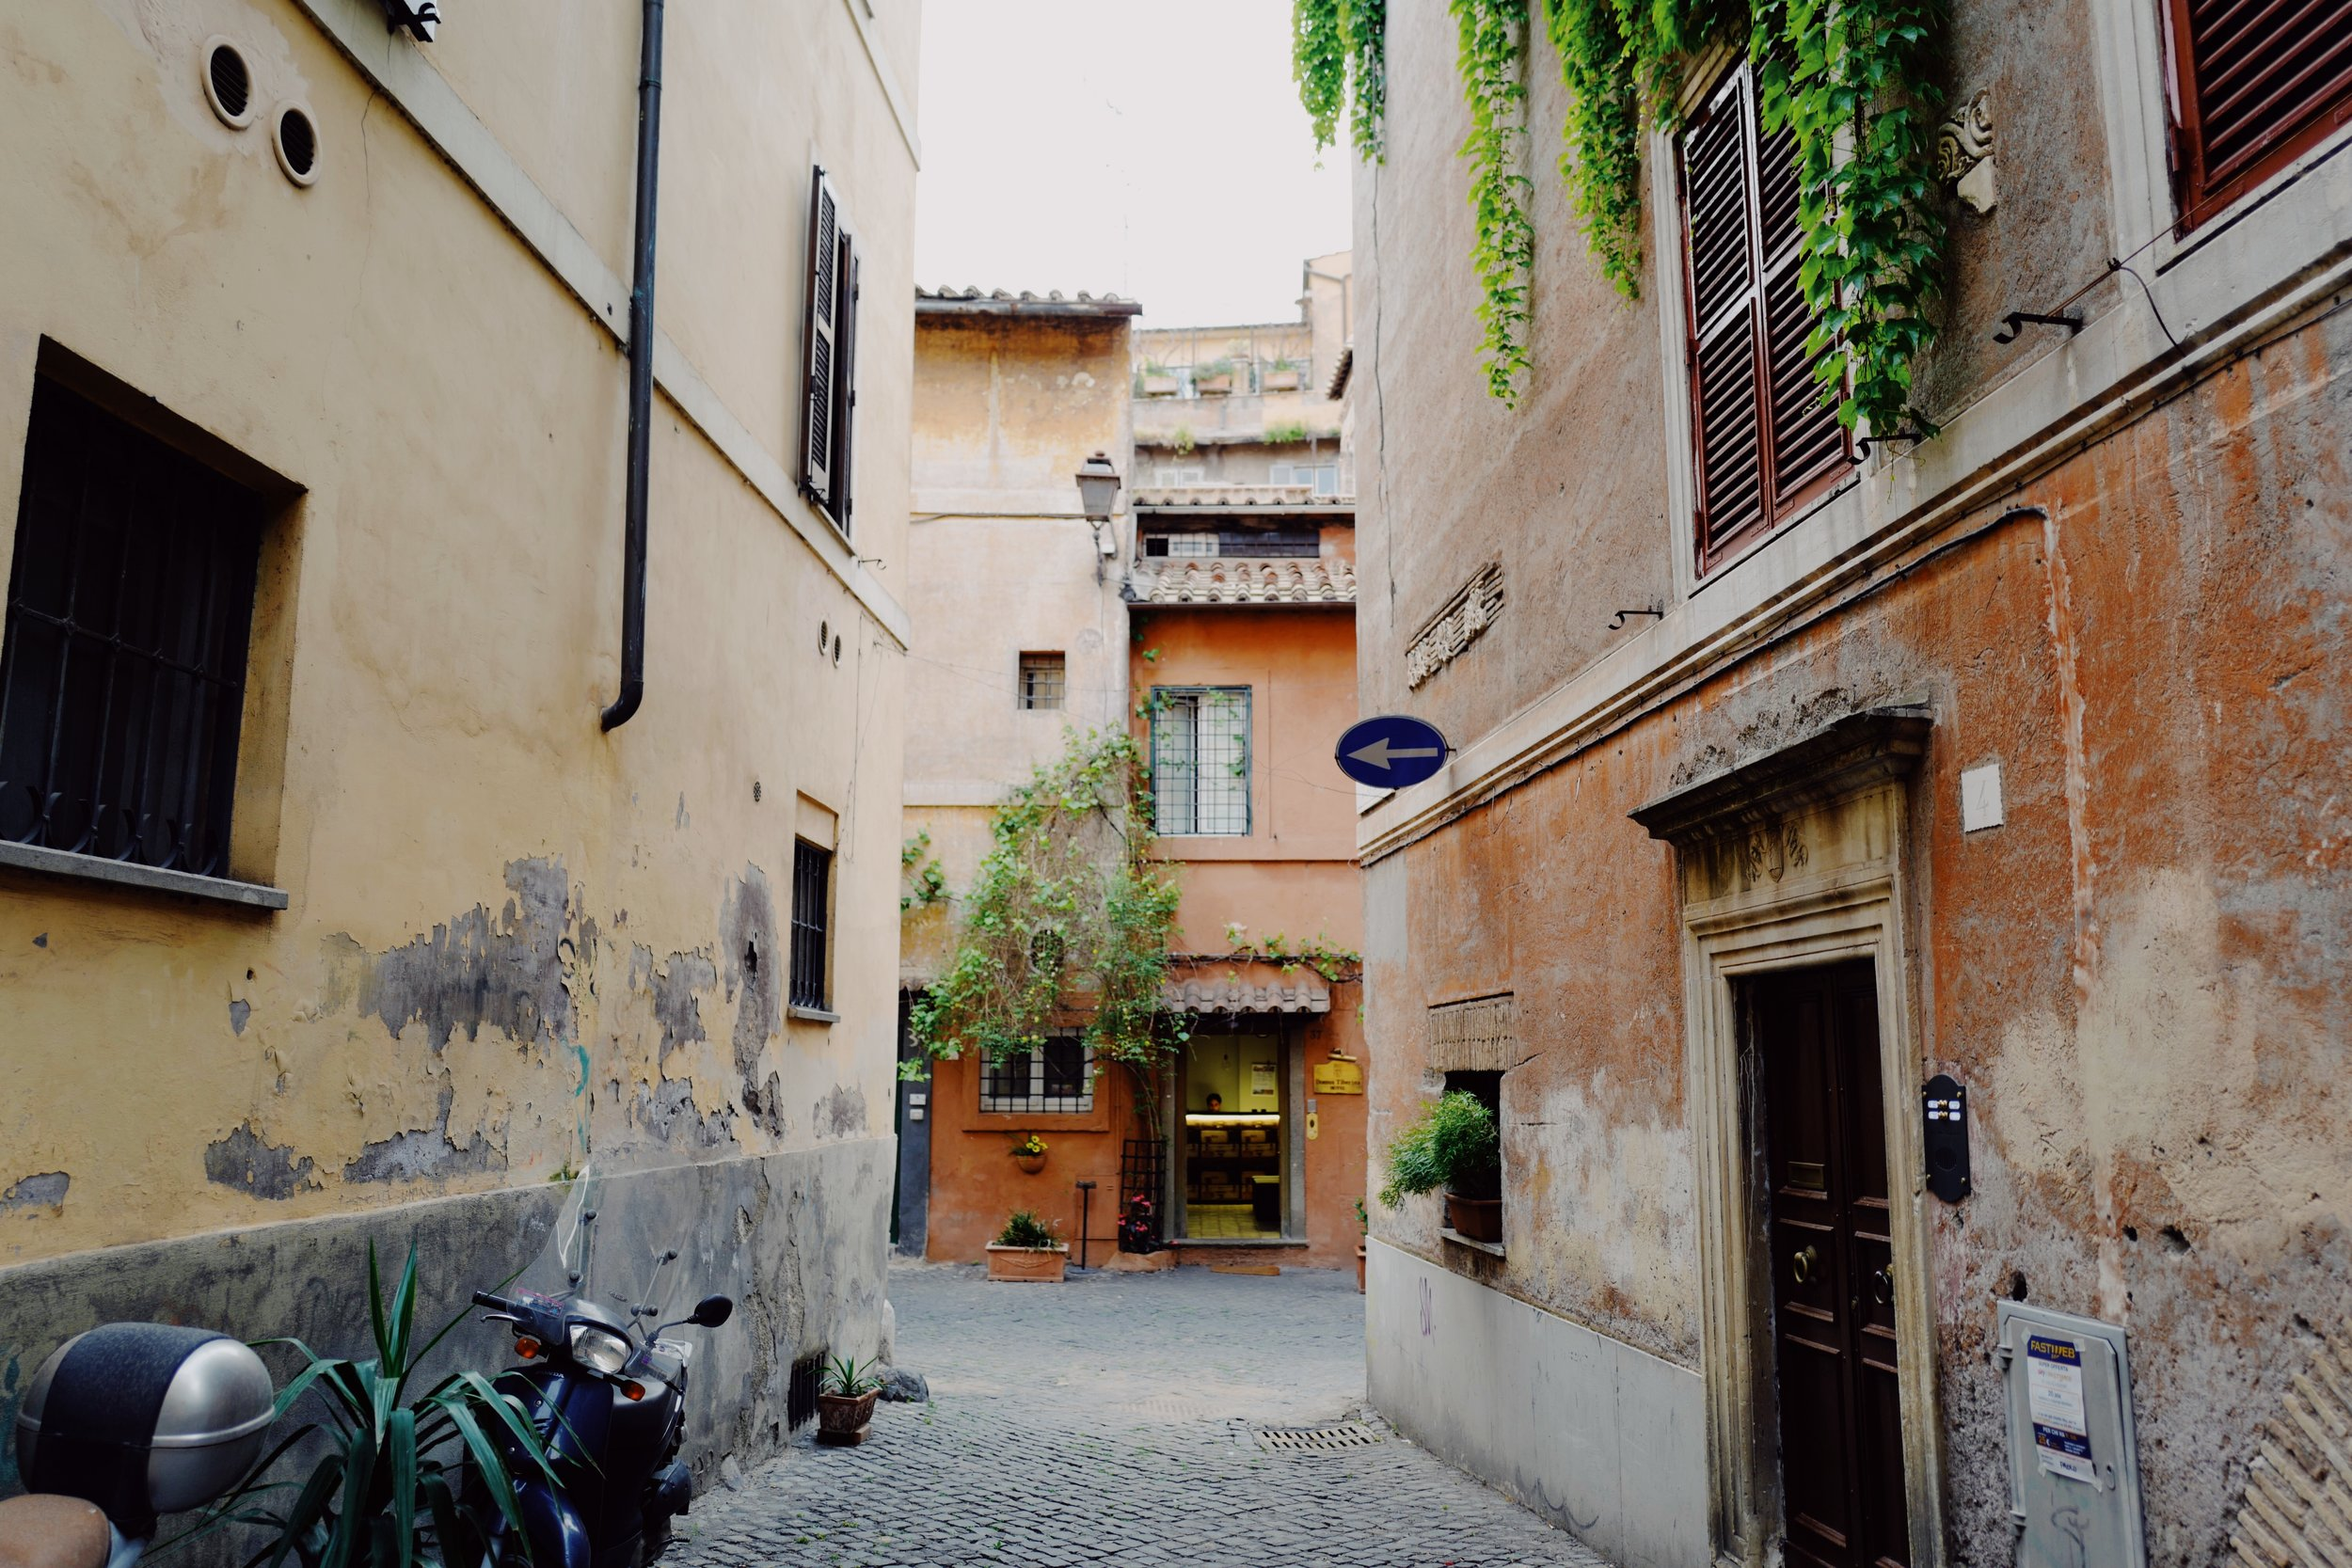 Trastevere: Small alleyway with faded walls